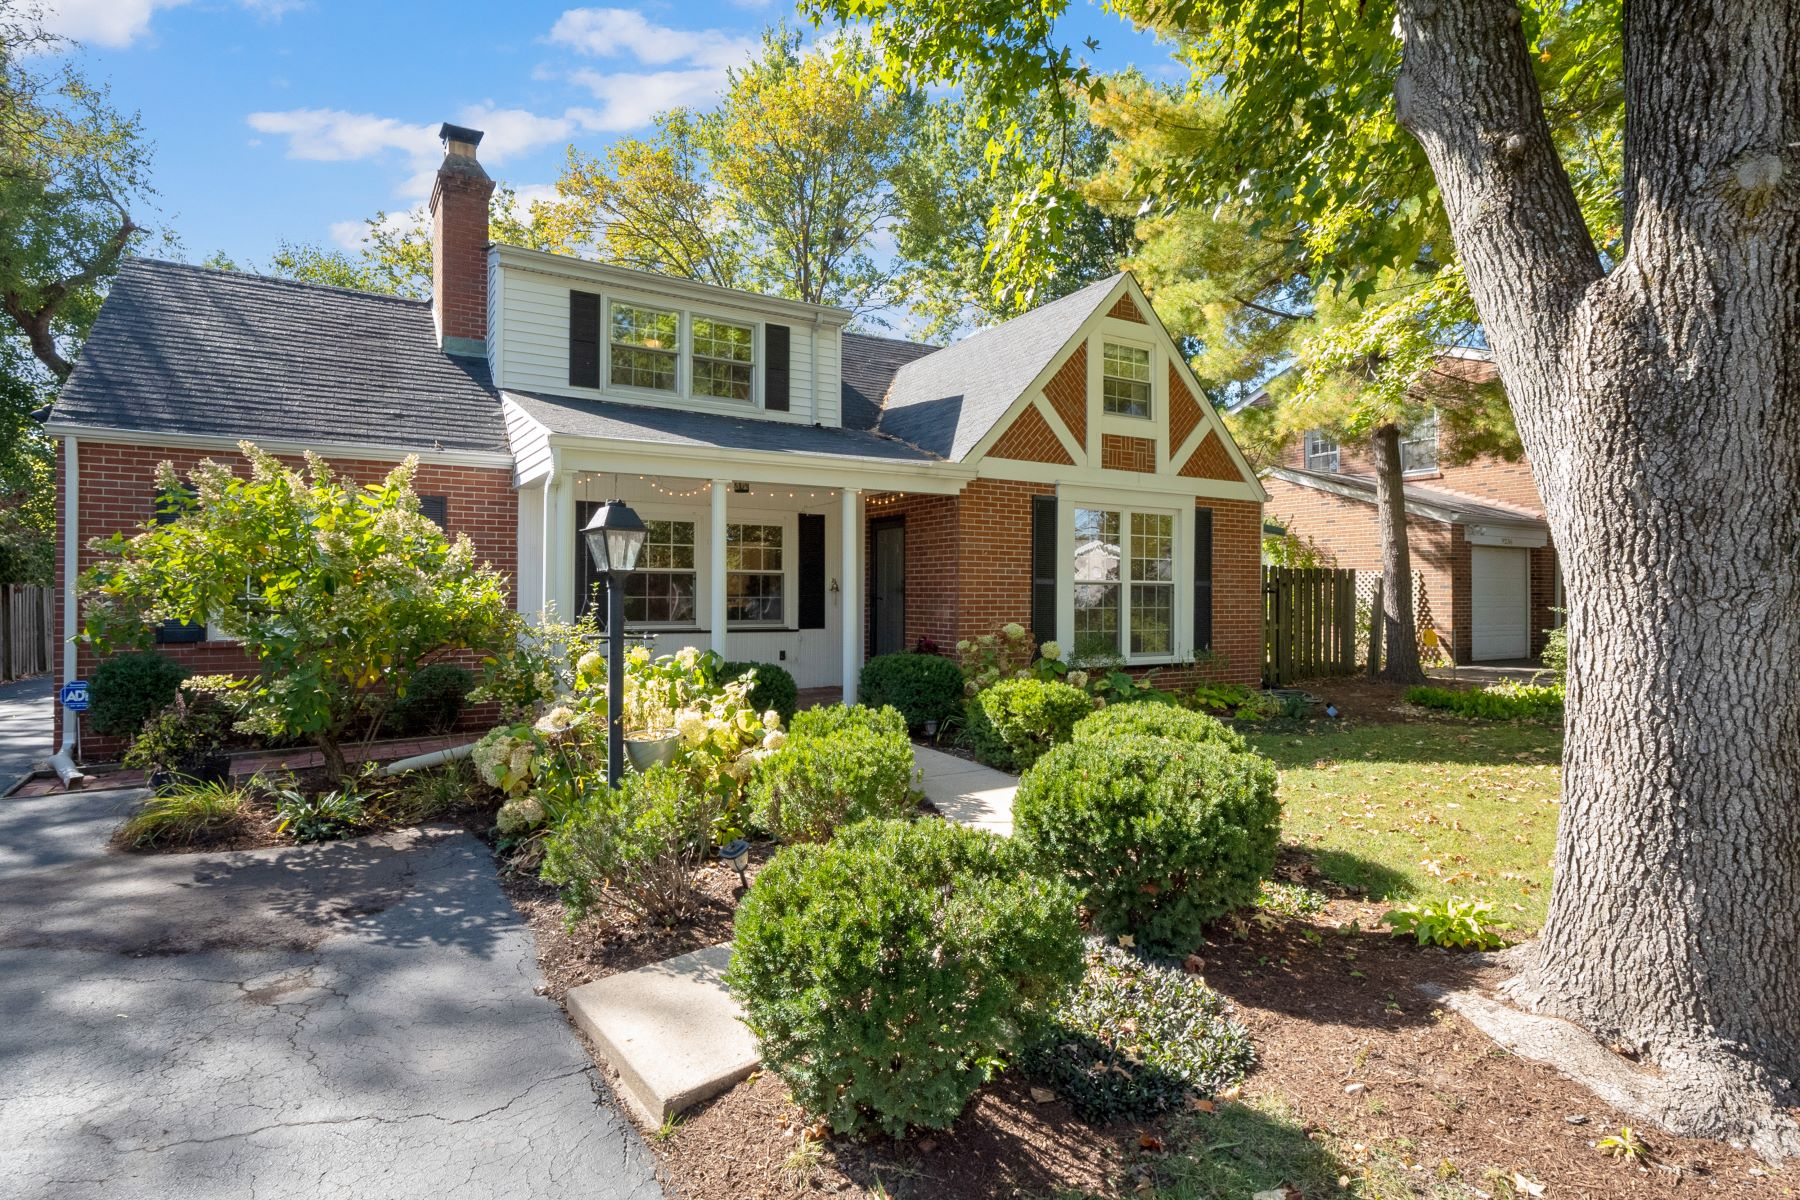 Property for Sale at Classic Chevy Chase Cottage! 9230 Old Bonhomme Road Olivette, Missouri 63132 United States